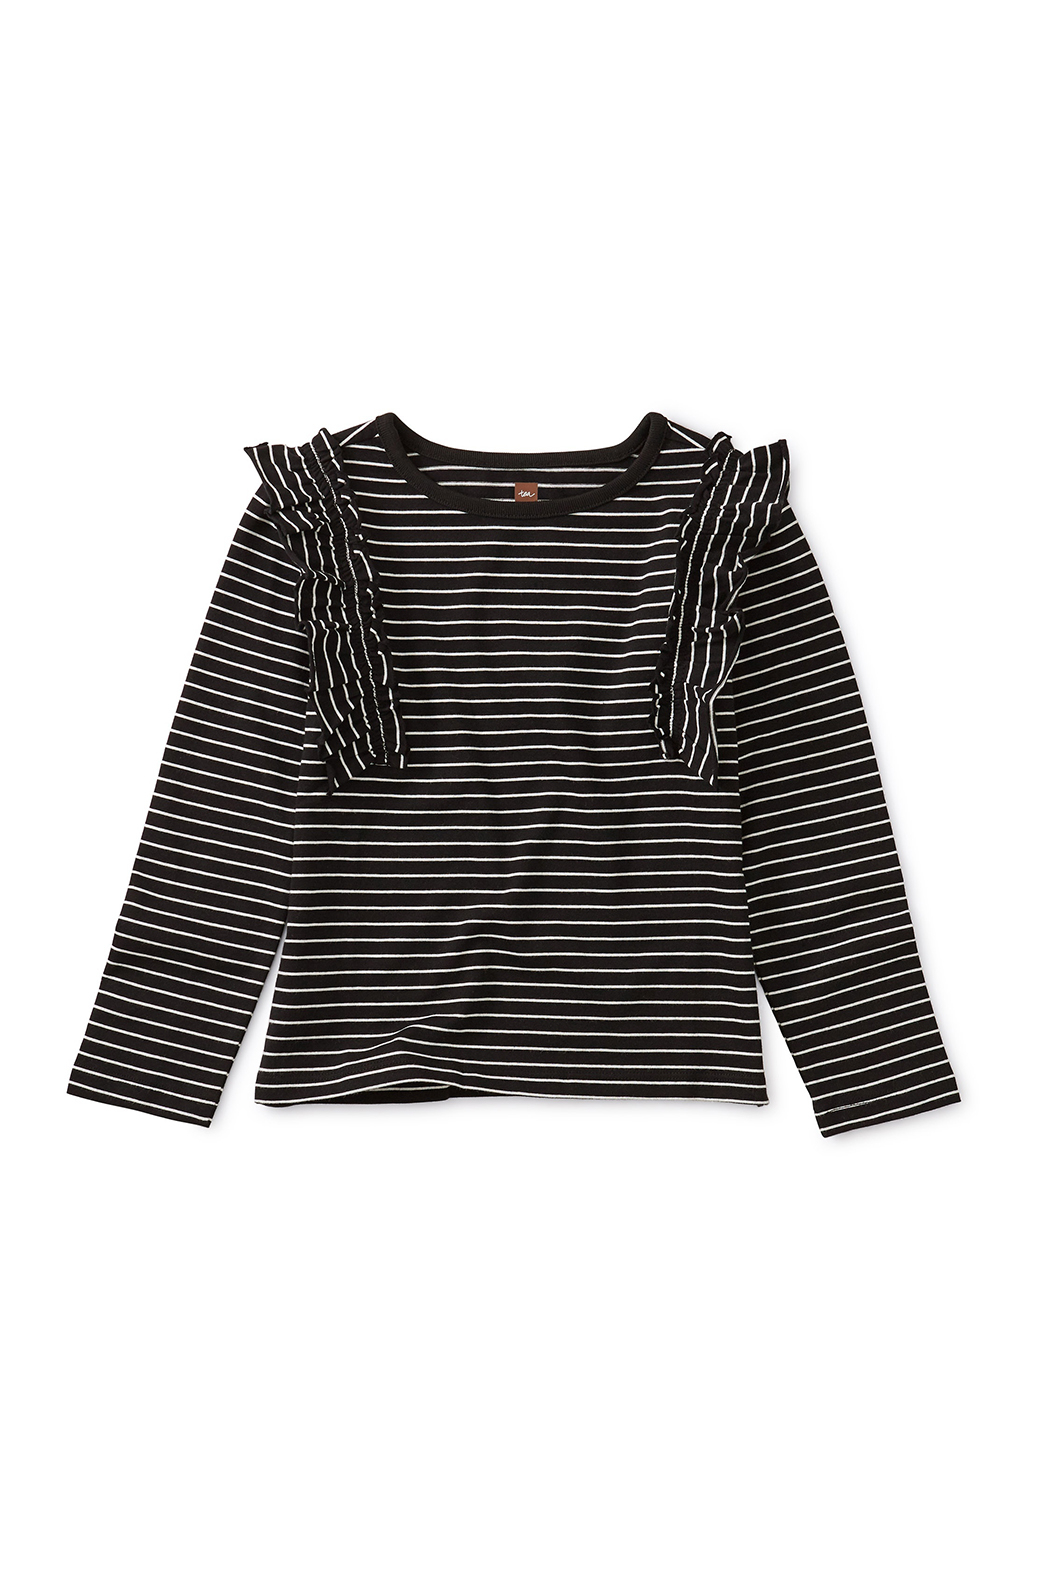 Tea Collection Striped Ruffle Flutter Top - Main Image